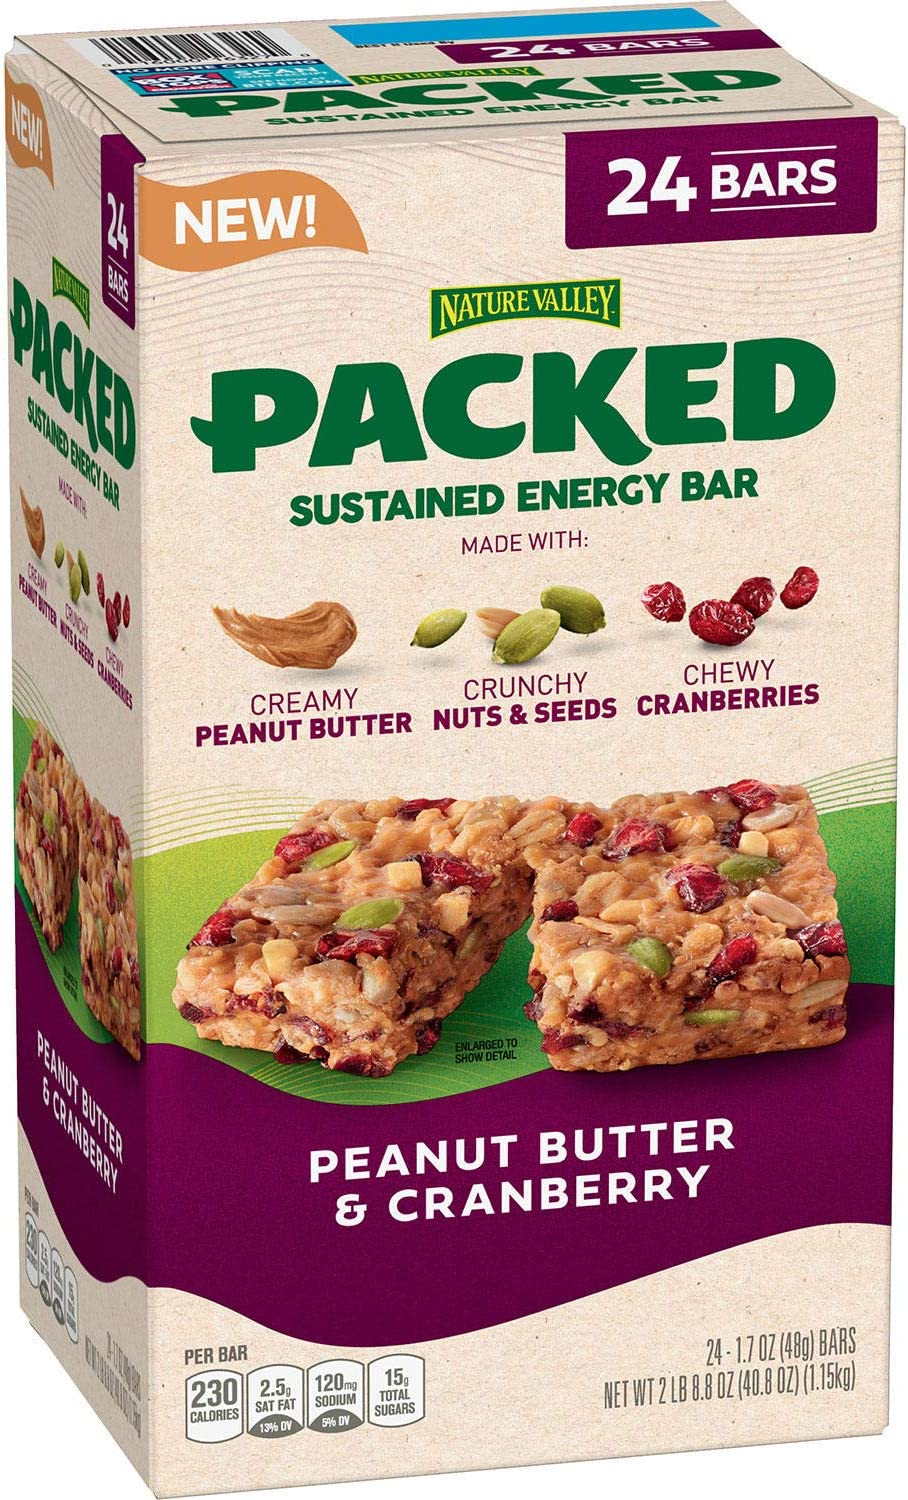 Nature Valley Packed Sustained Energy Bar, Creamy Peanut Butter-Crunchy Nuts & Seeds-Chewy Cranberries, 40.8 Oz, 1.15 kg